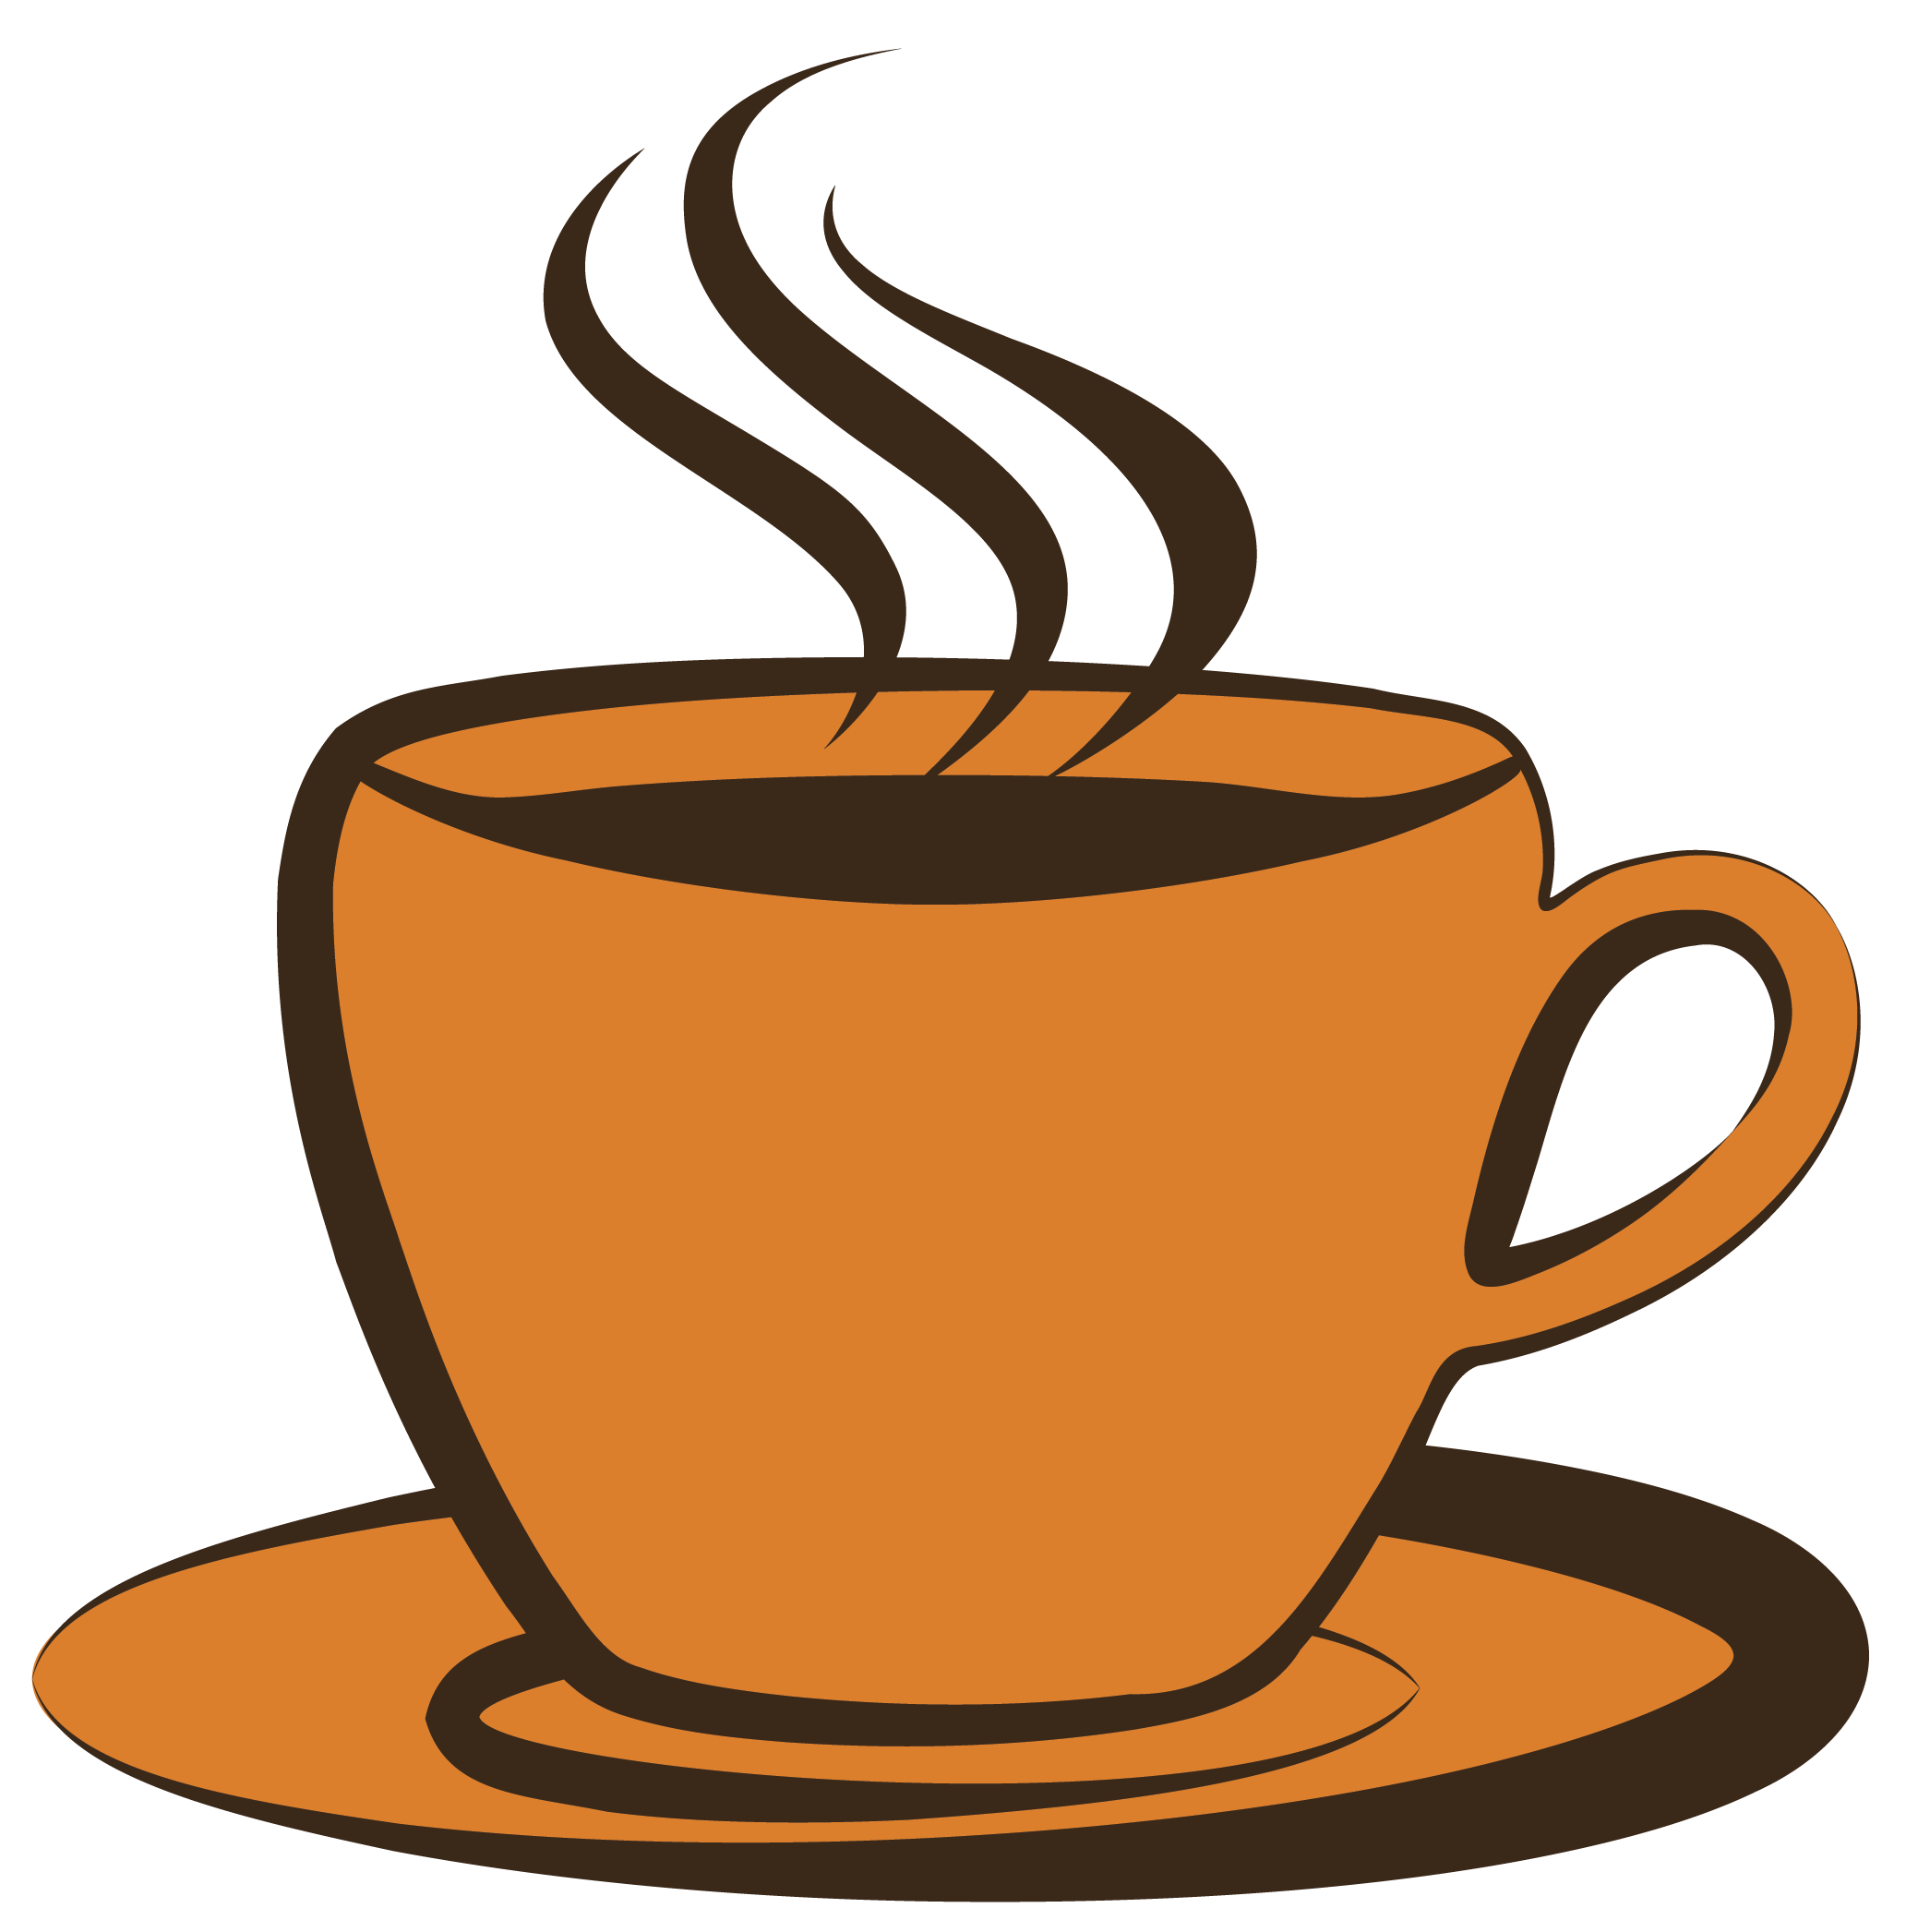 2065x2093 Coffee Cup Clip Art Free Perfect Of Coffee Clipart 3